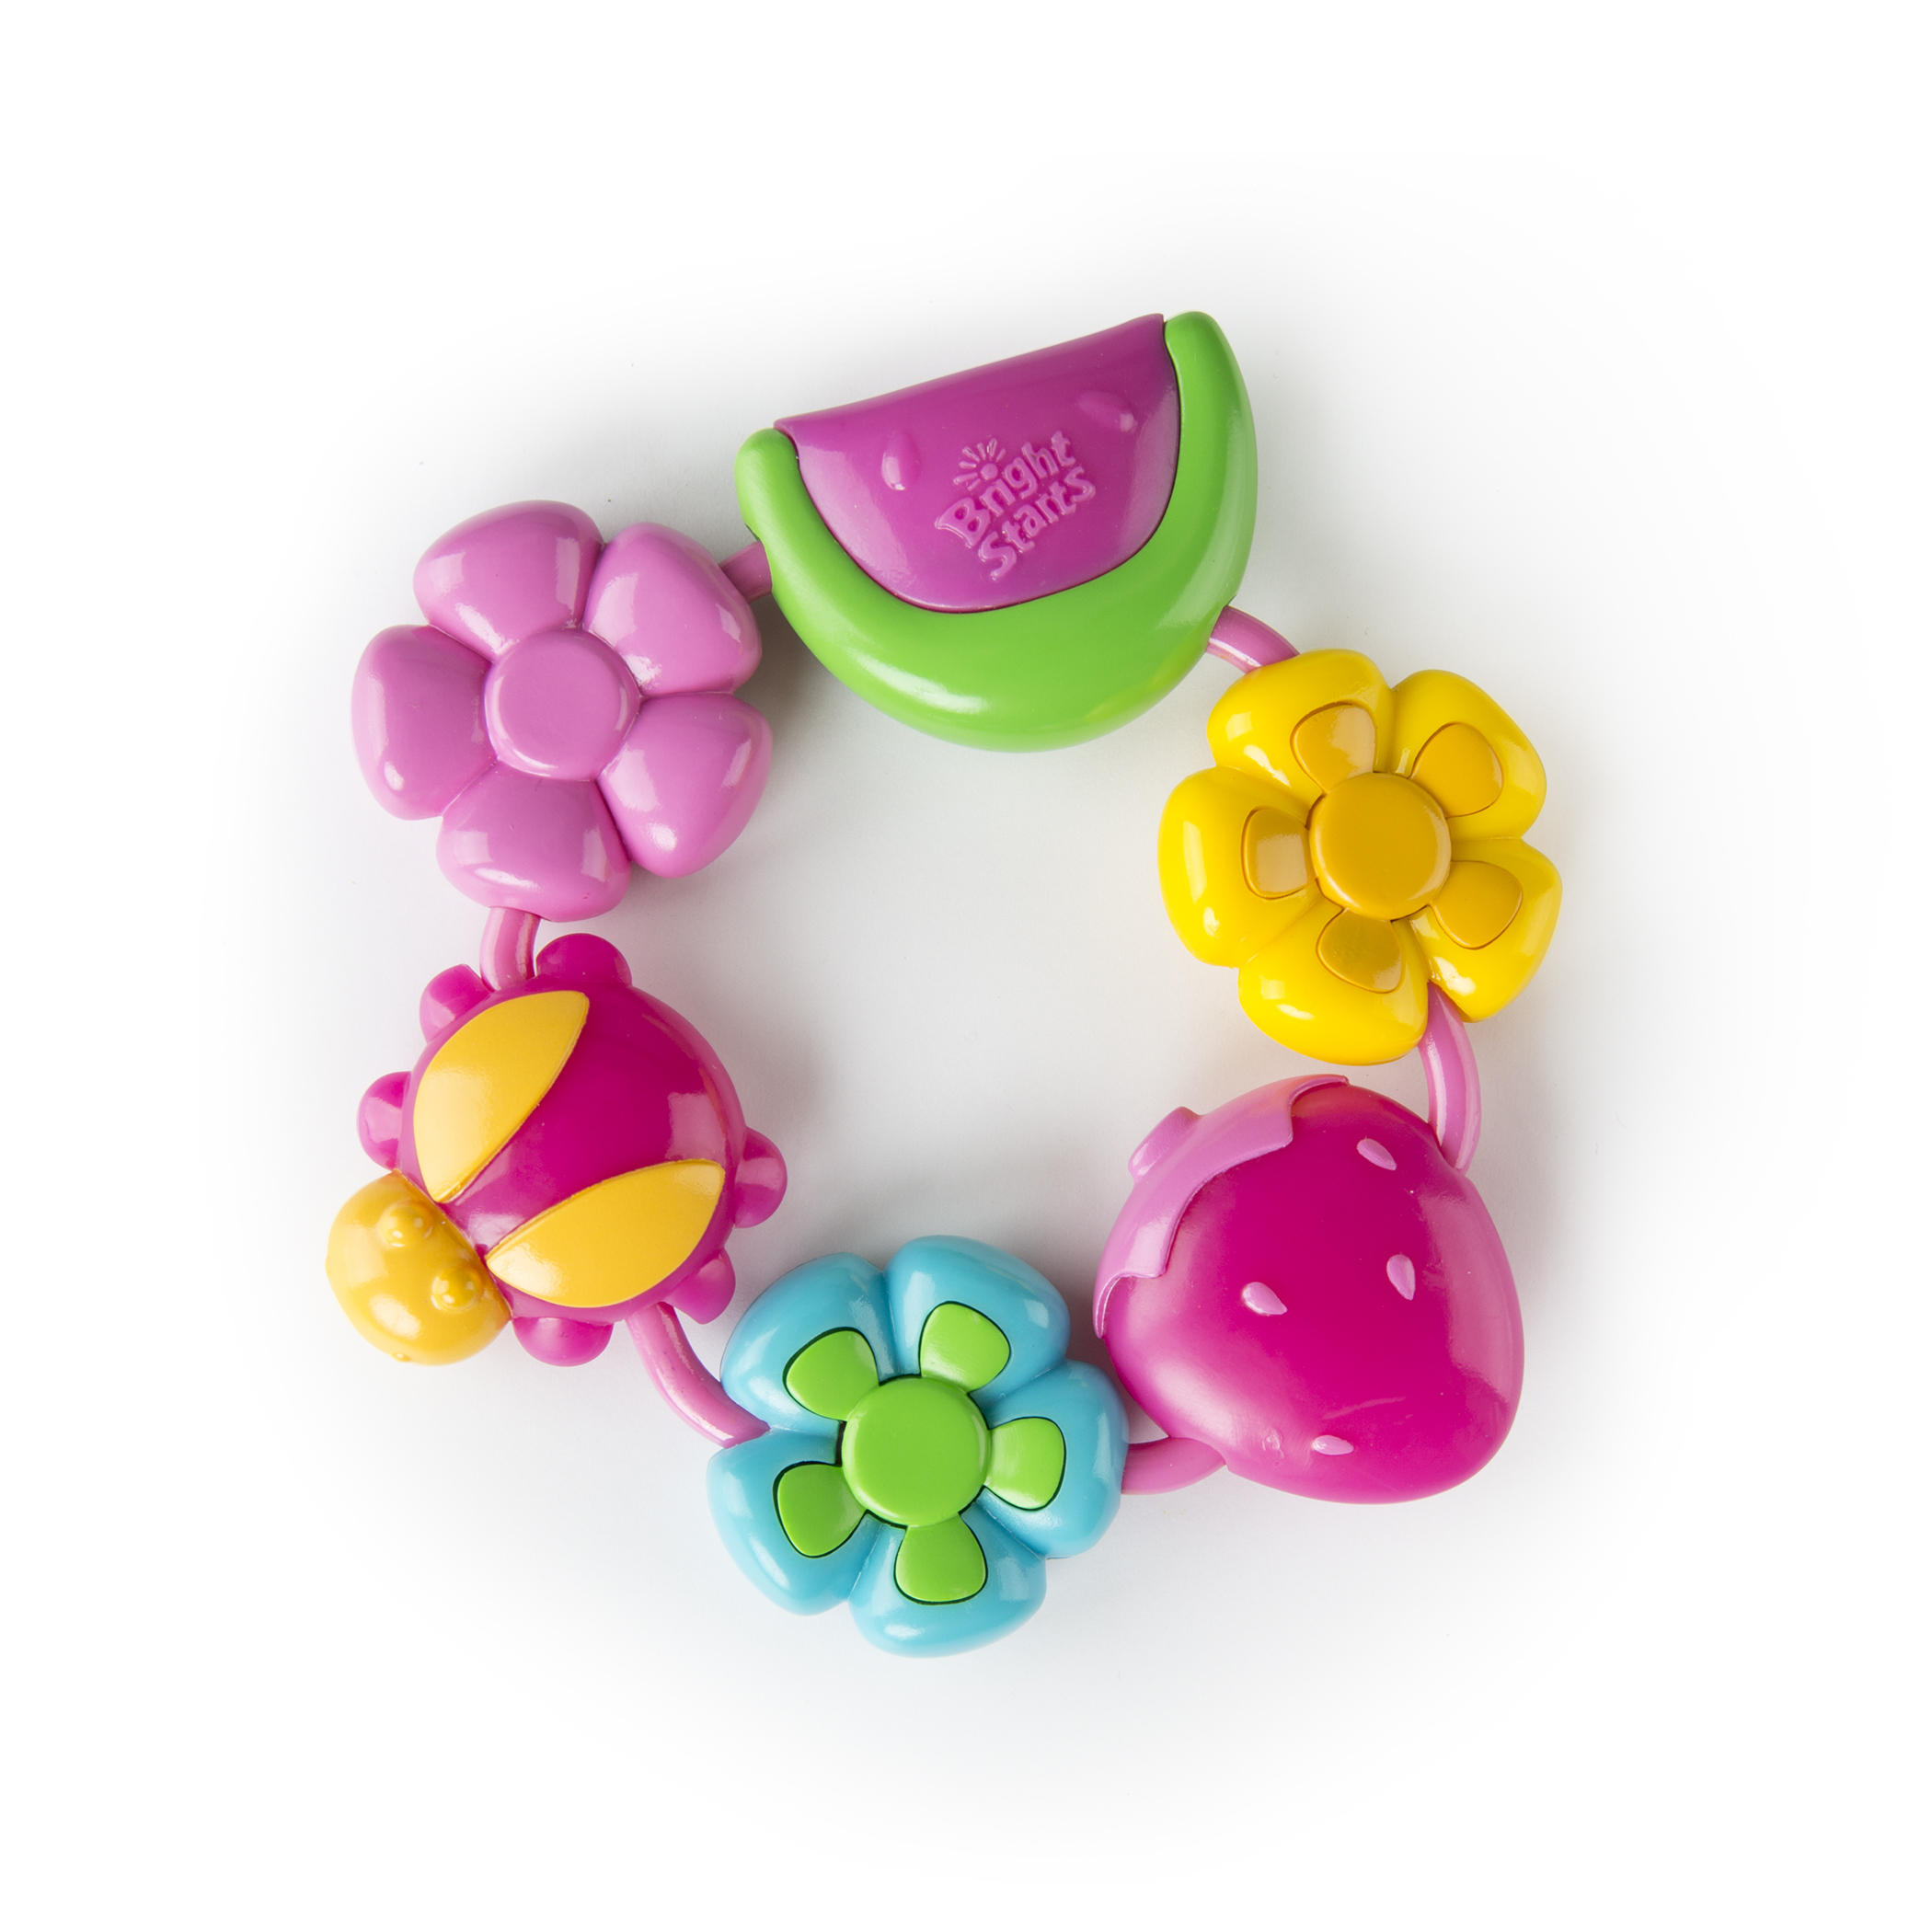 Buggie Bites Teether™ Teether Toy